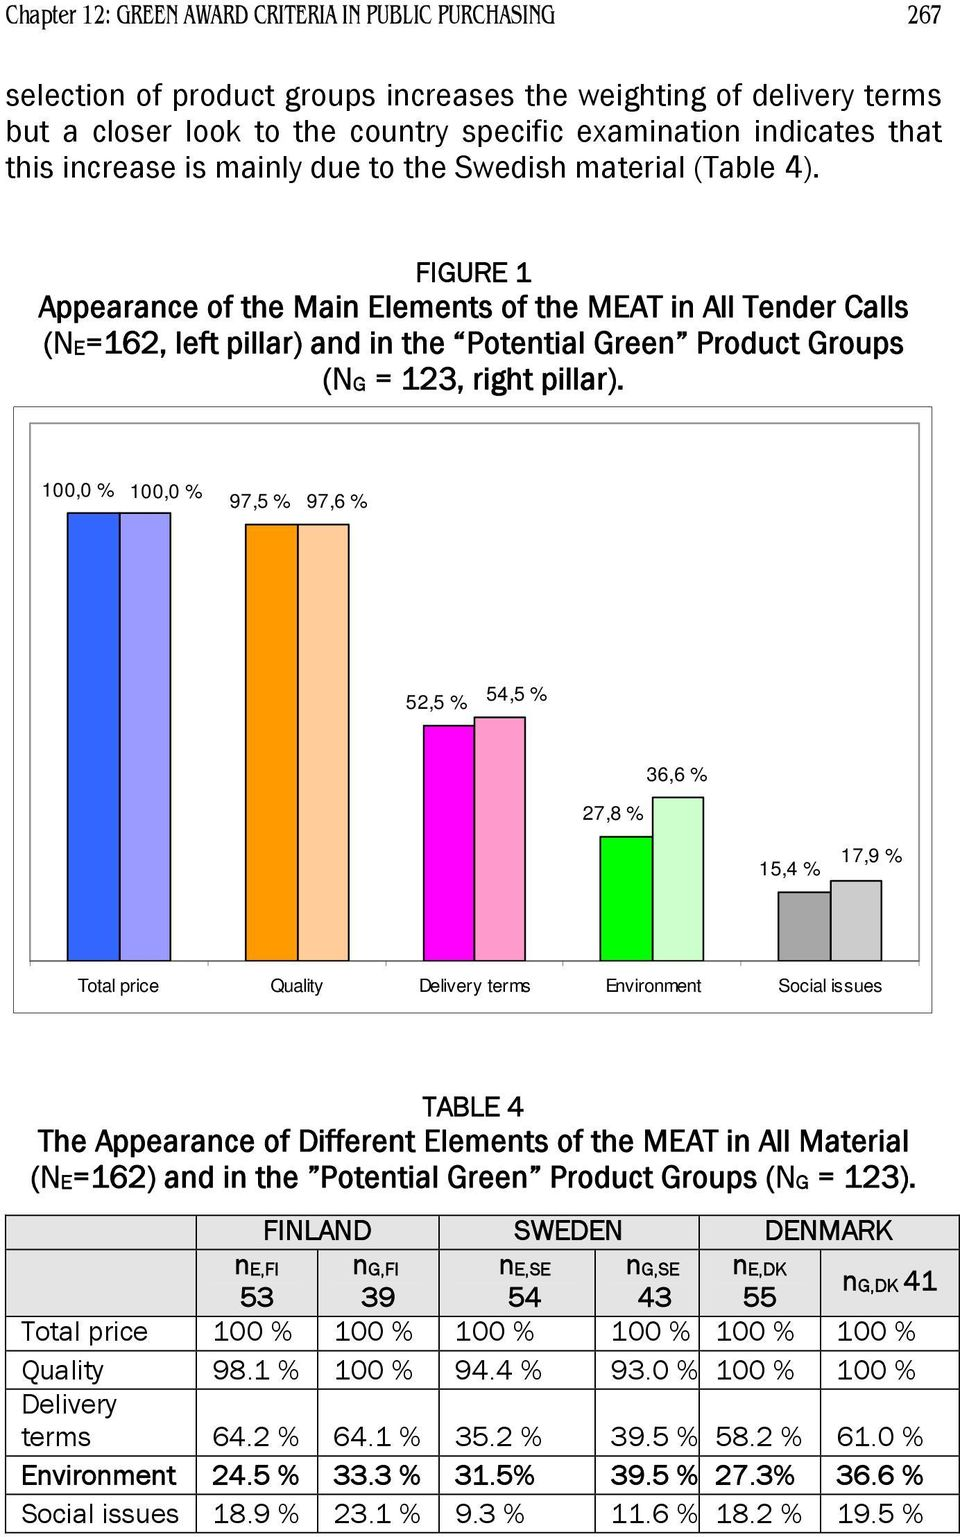 FIGURE 1 Appearance of the Main Elements of the MEAT in All Tender Calls (NE=162, left pillar) and in the Potential Green Product Groups (NG = 123, right pillar).